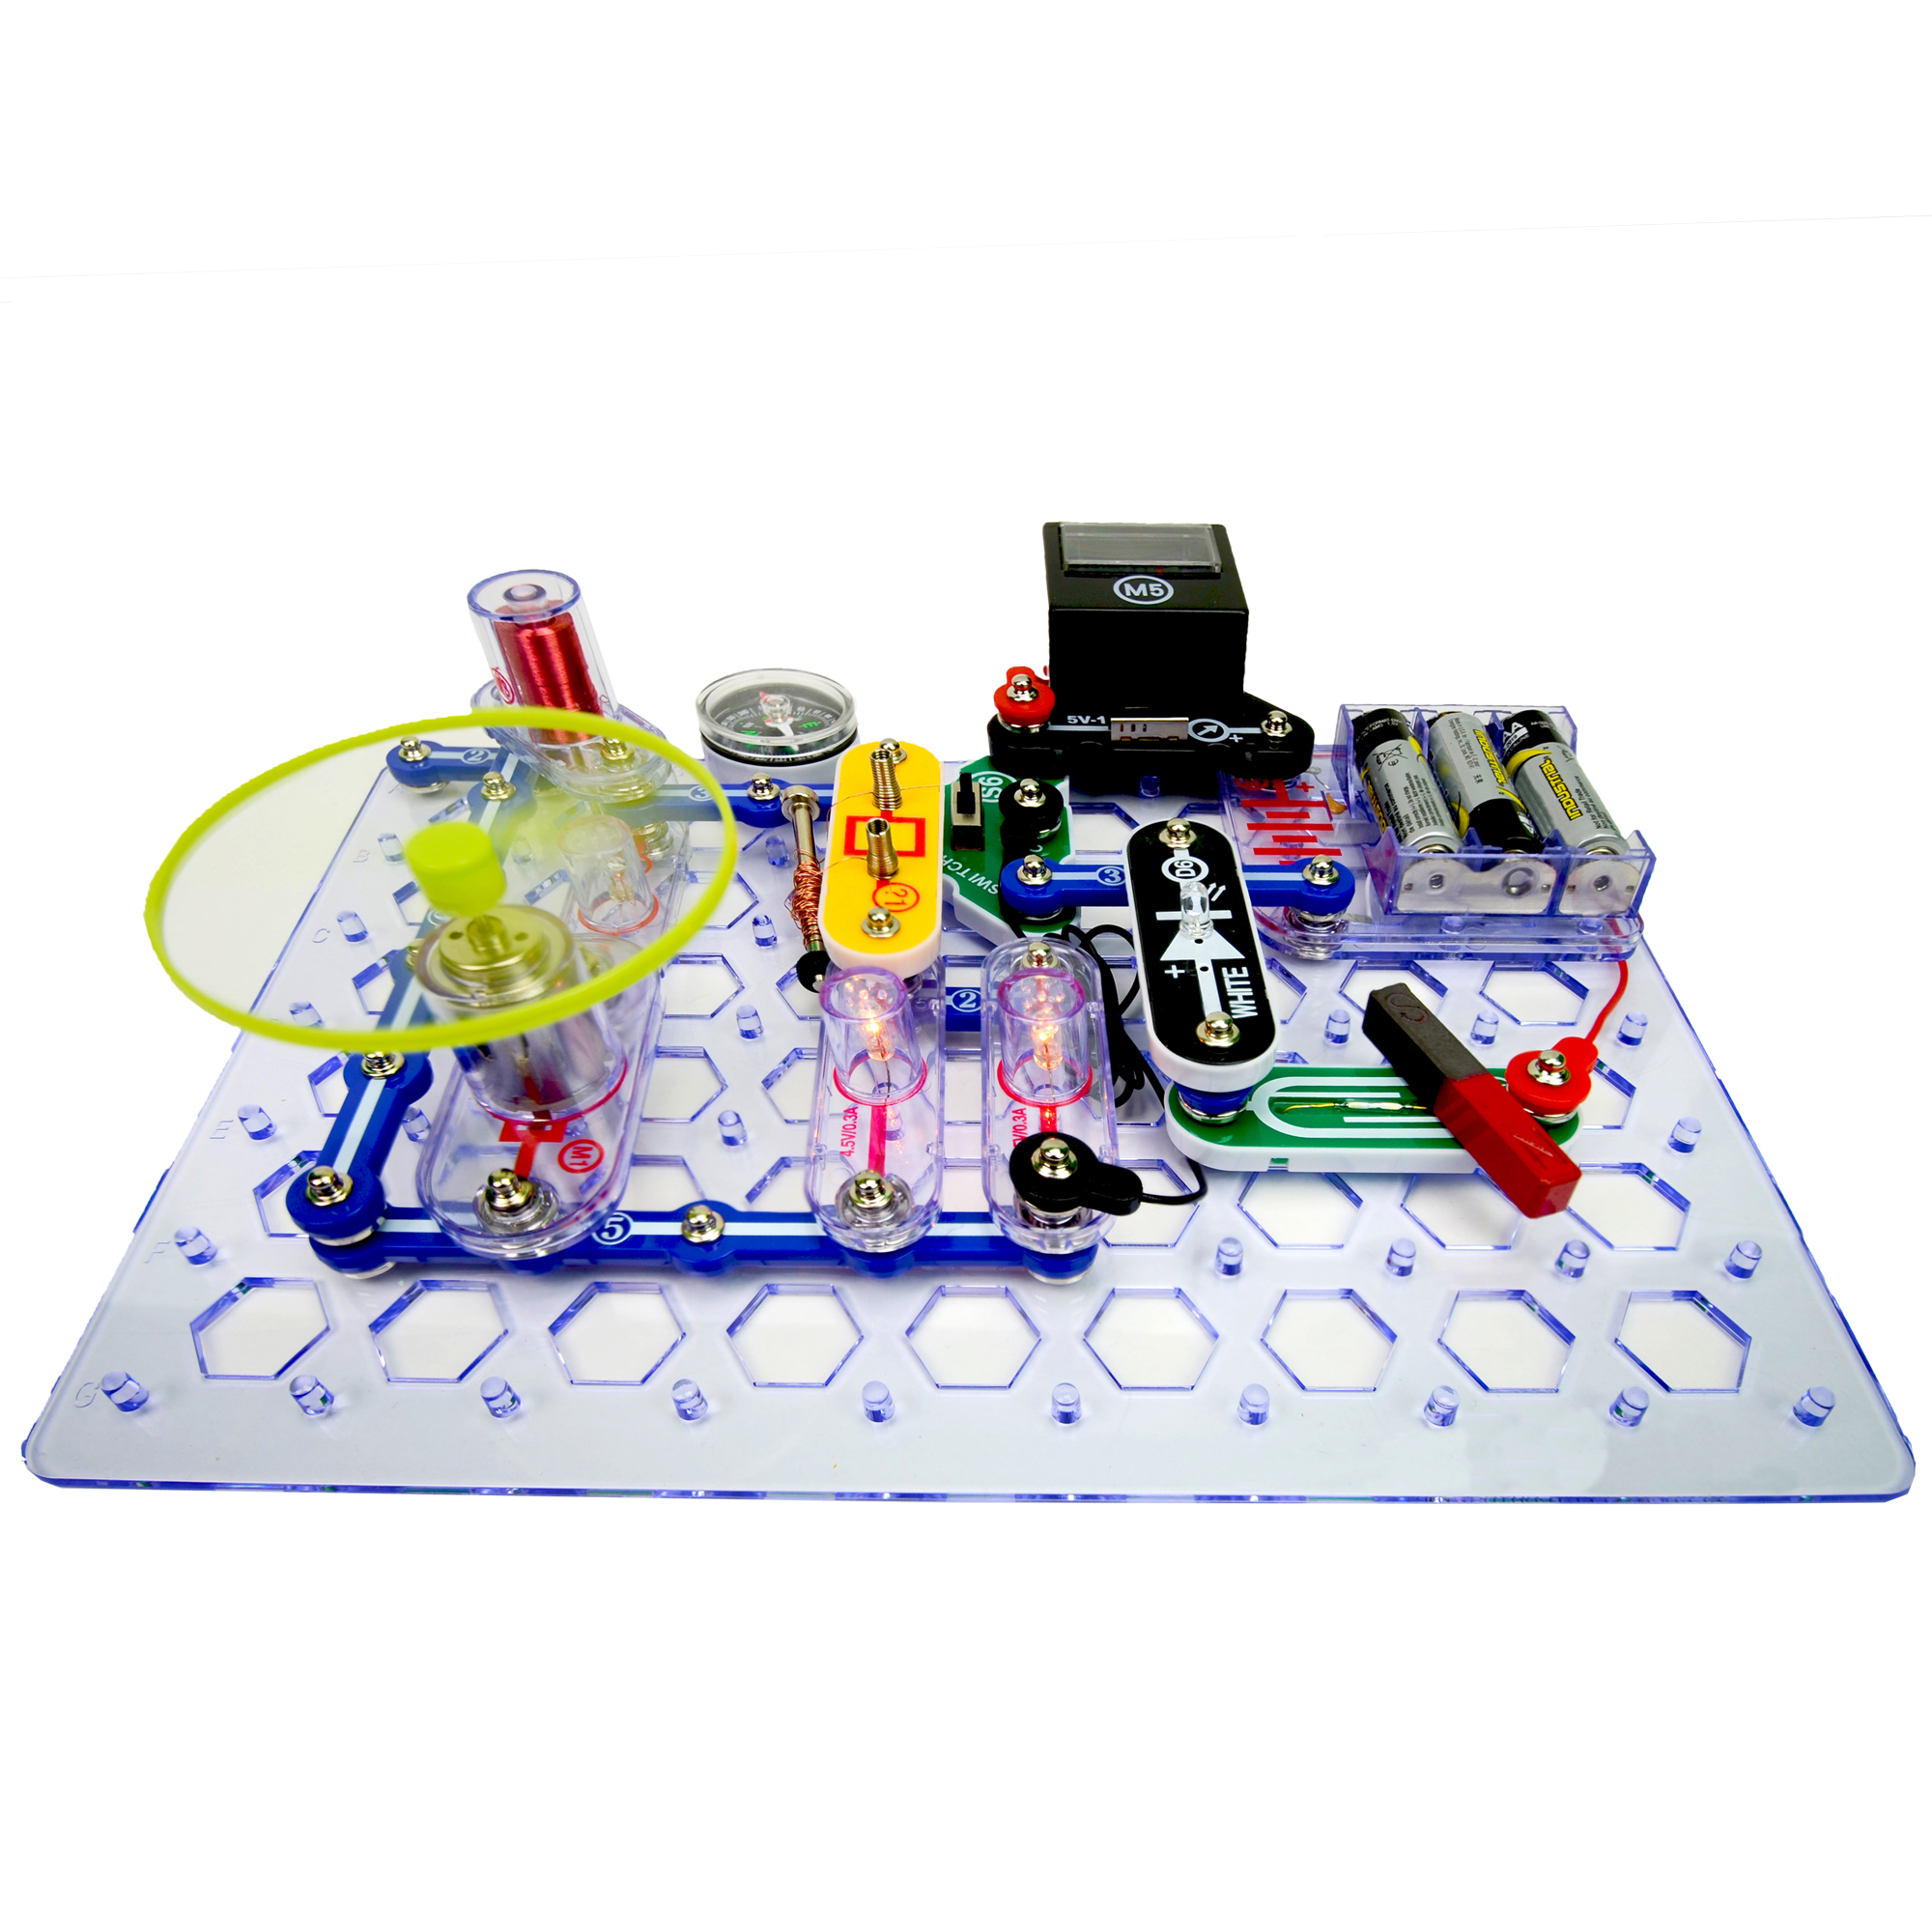 Simple Circuit Board For Kids Is A Printed Circuit Board